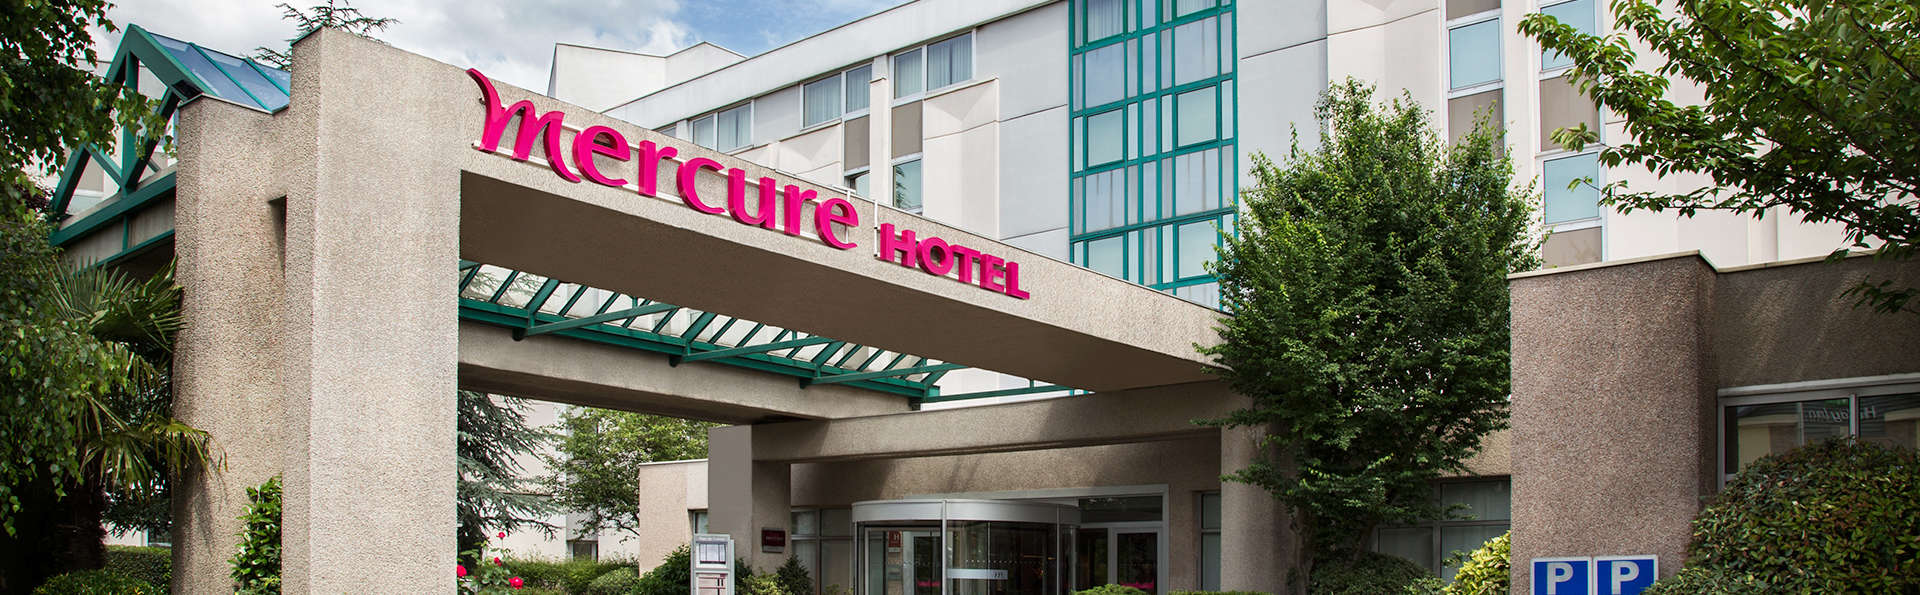 Mercure Paris Roissy CDG - EDIT_front2.jpg